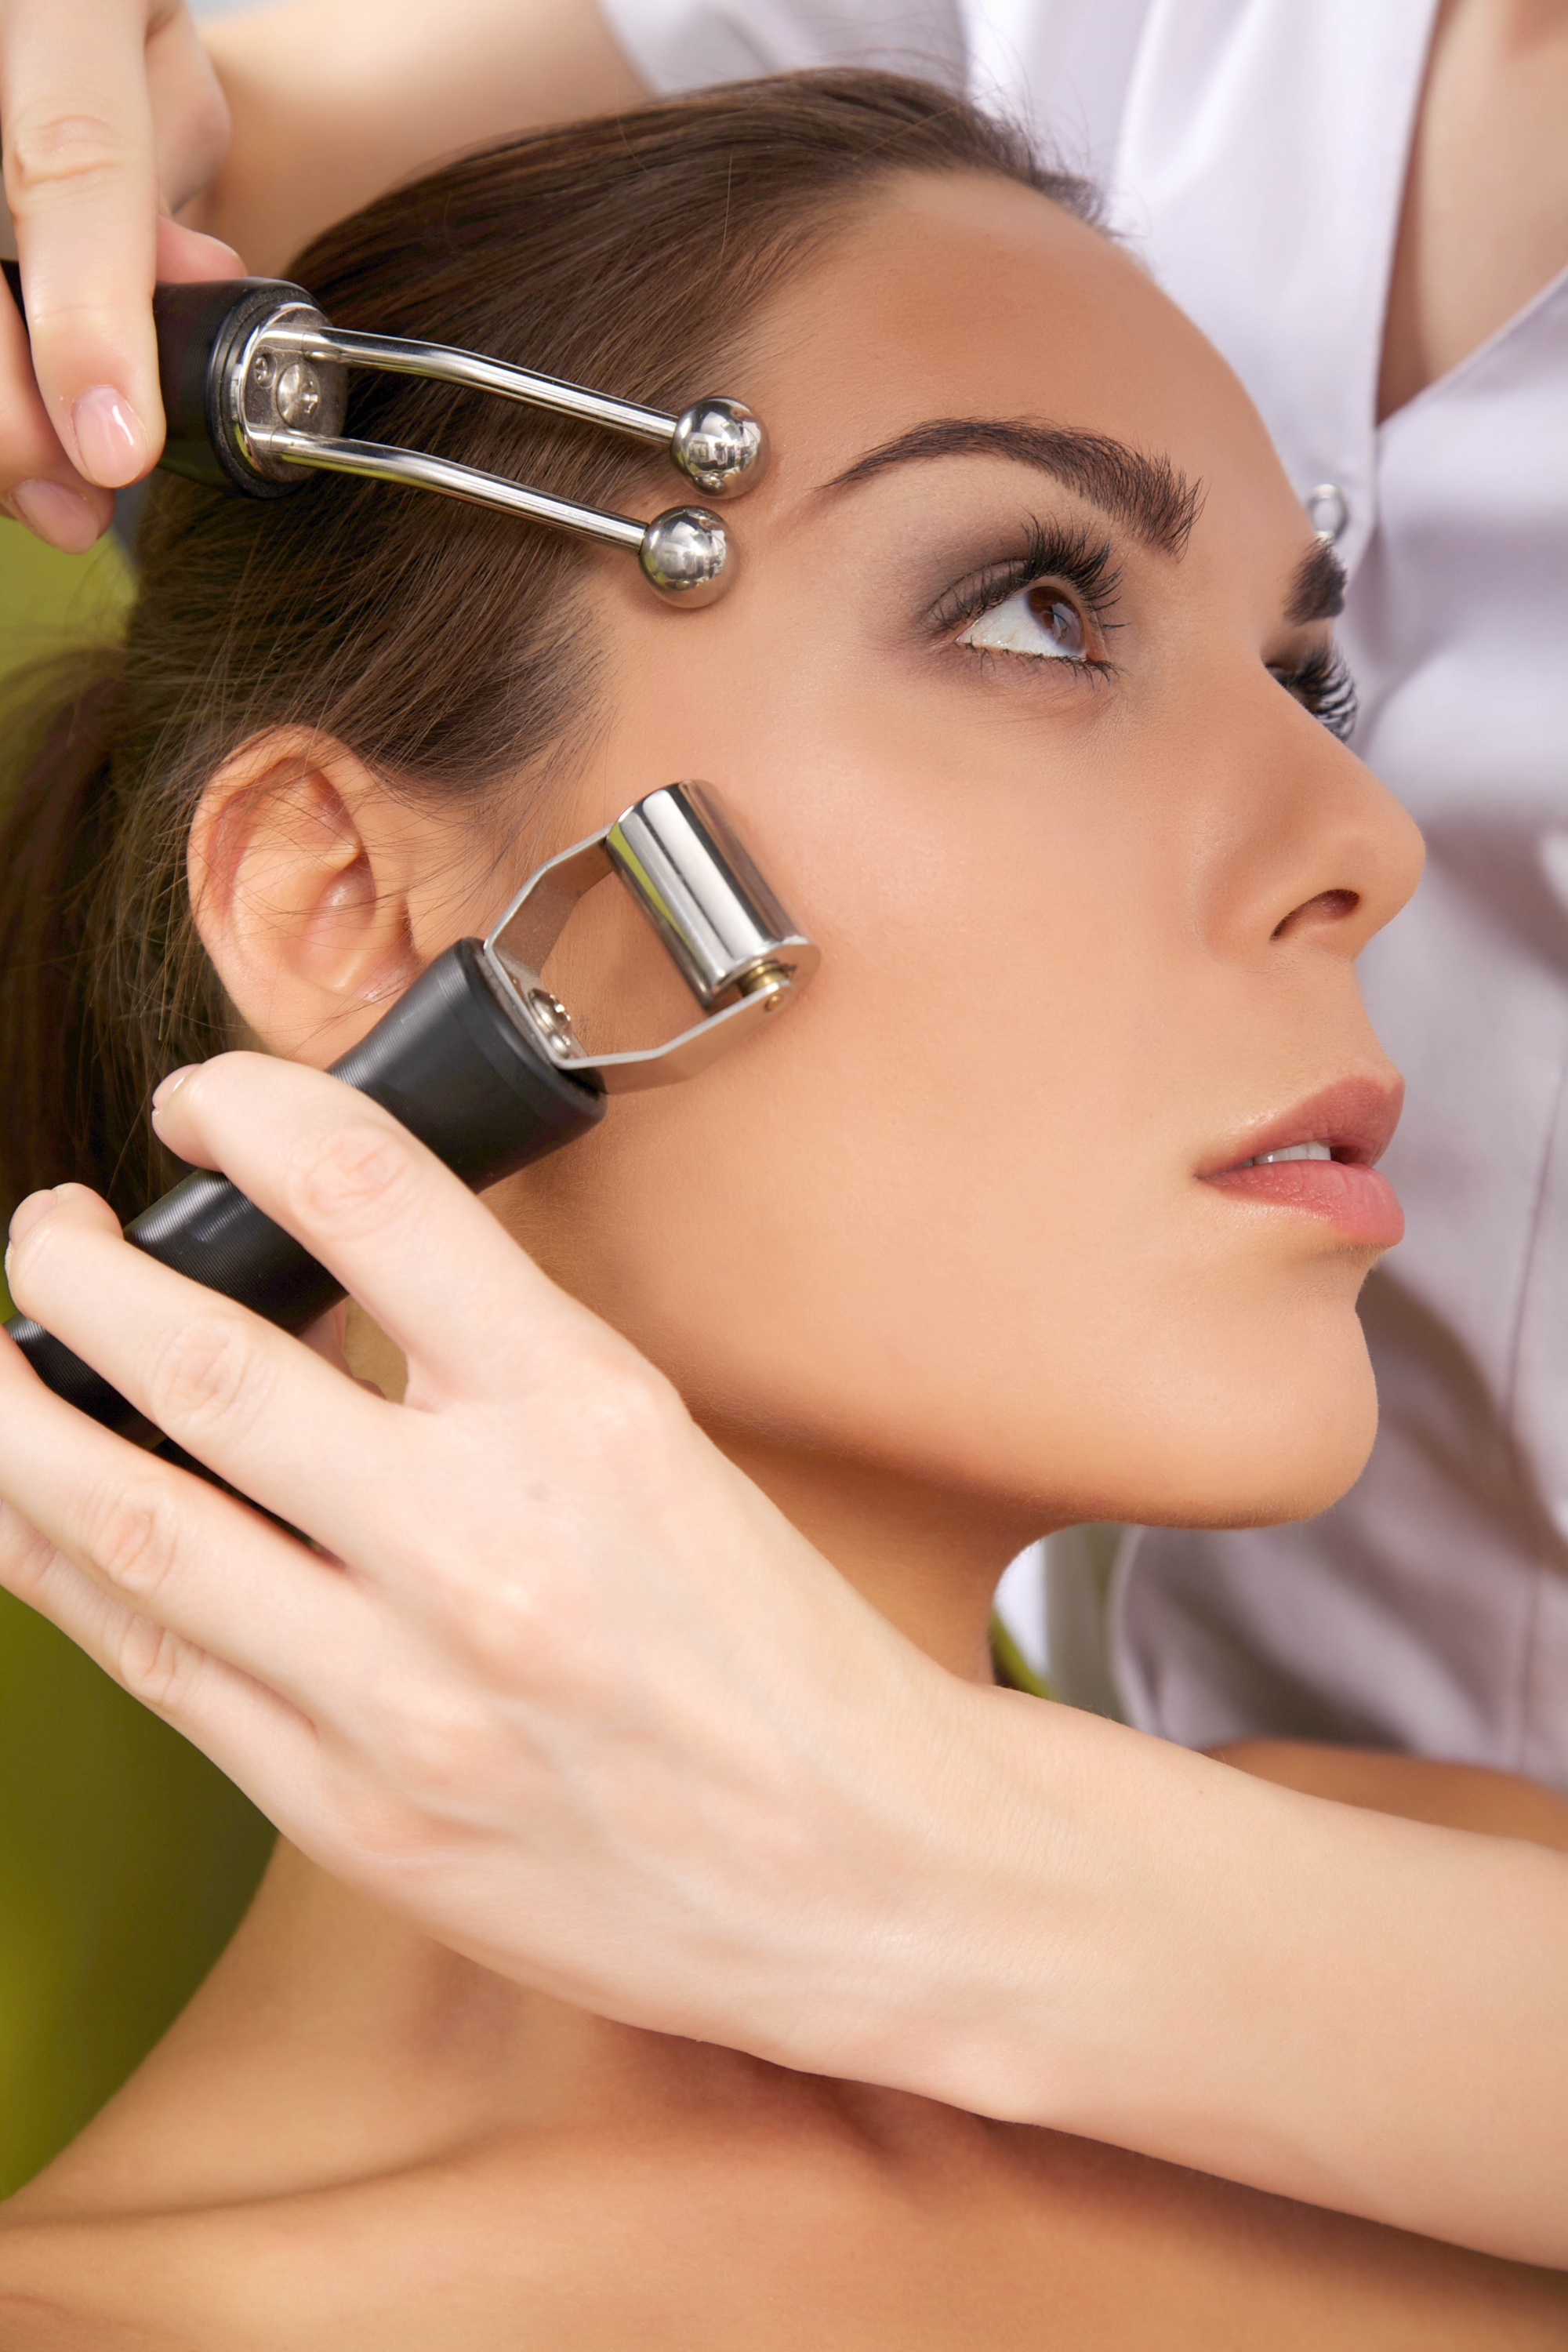 At home skin care devices skincare devices being used on a model